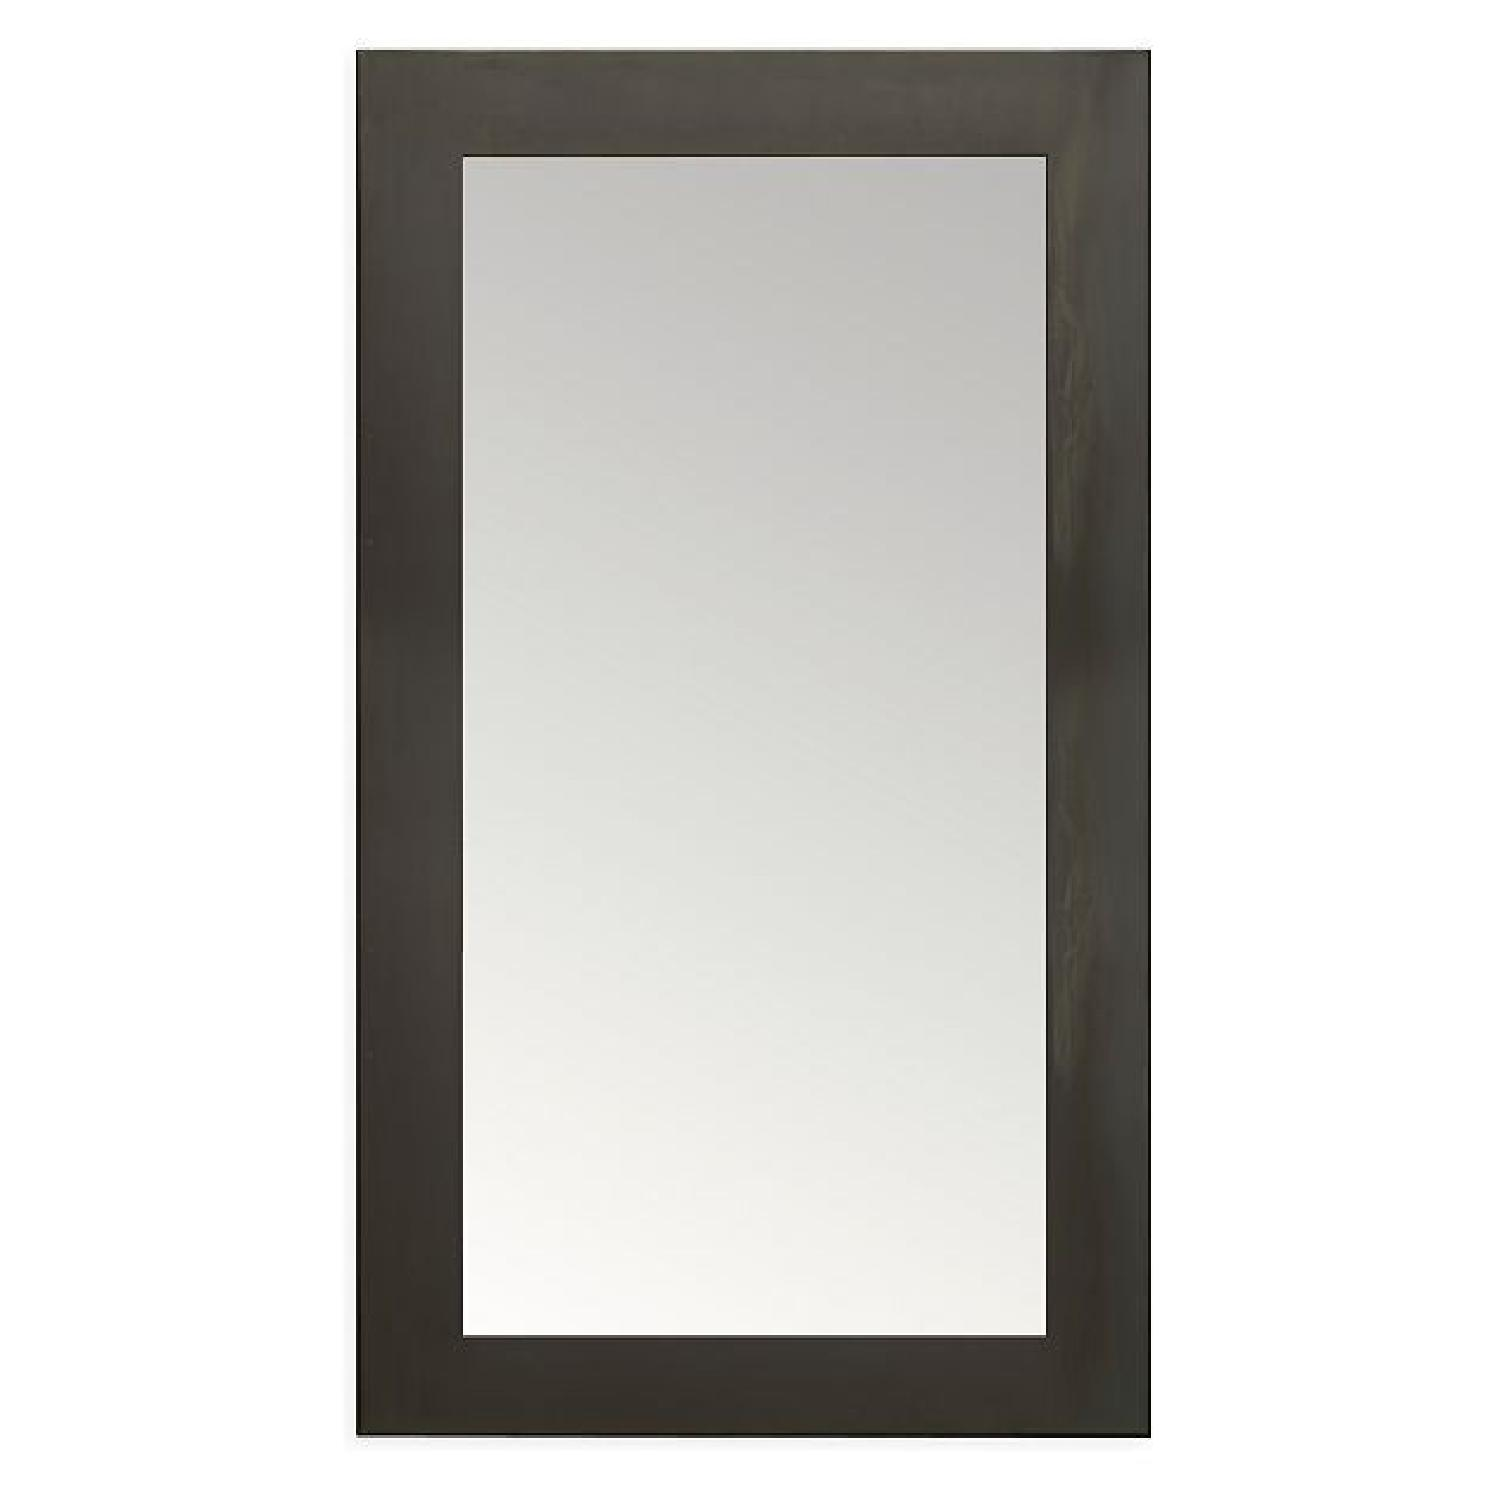 Room & Board Manhattan Leaning Mirrors in Natural Steel - image-0